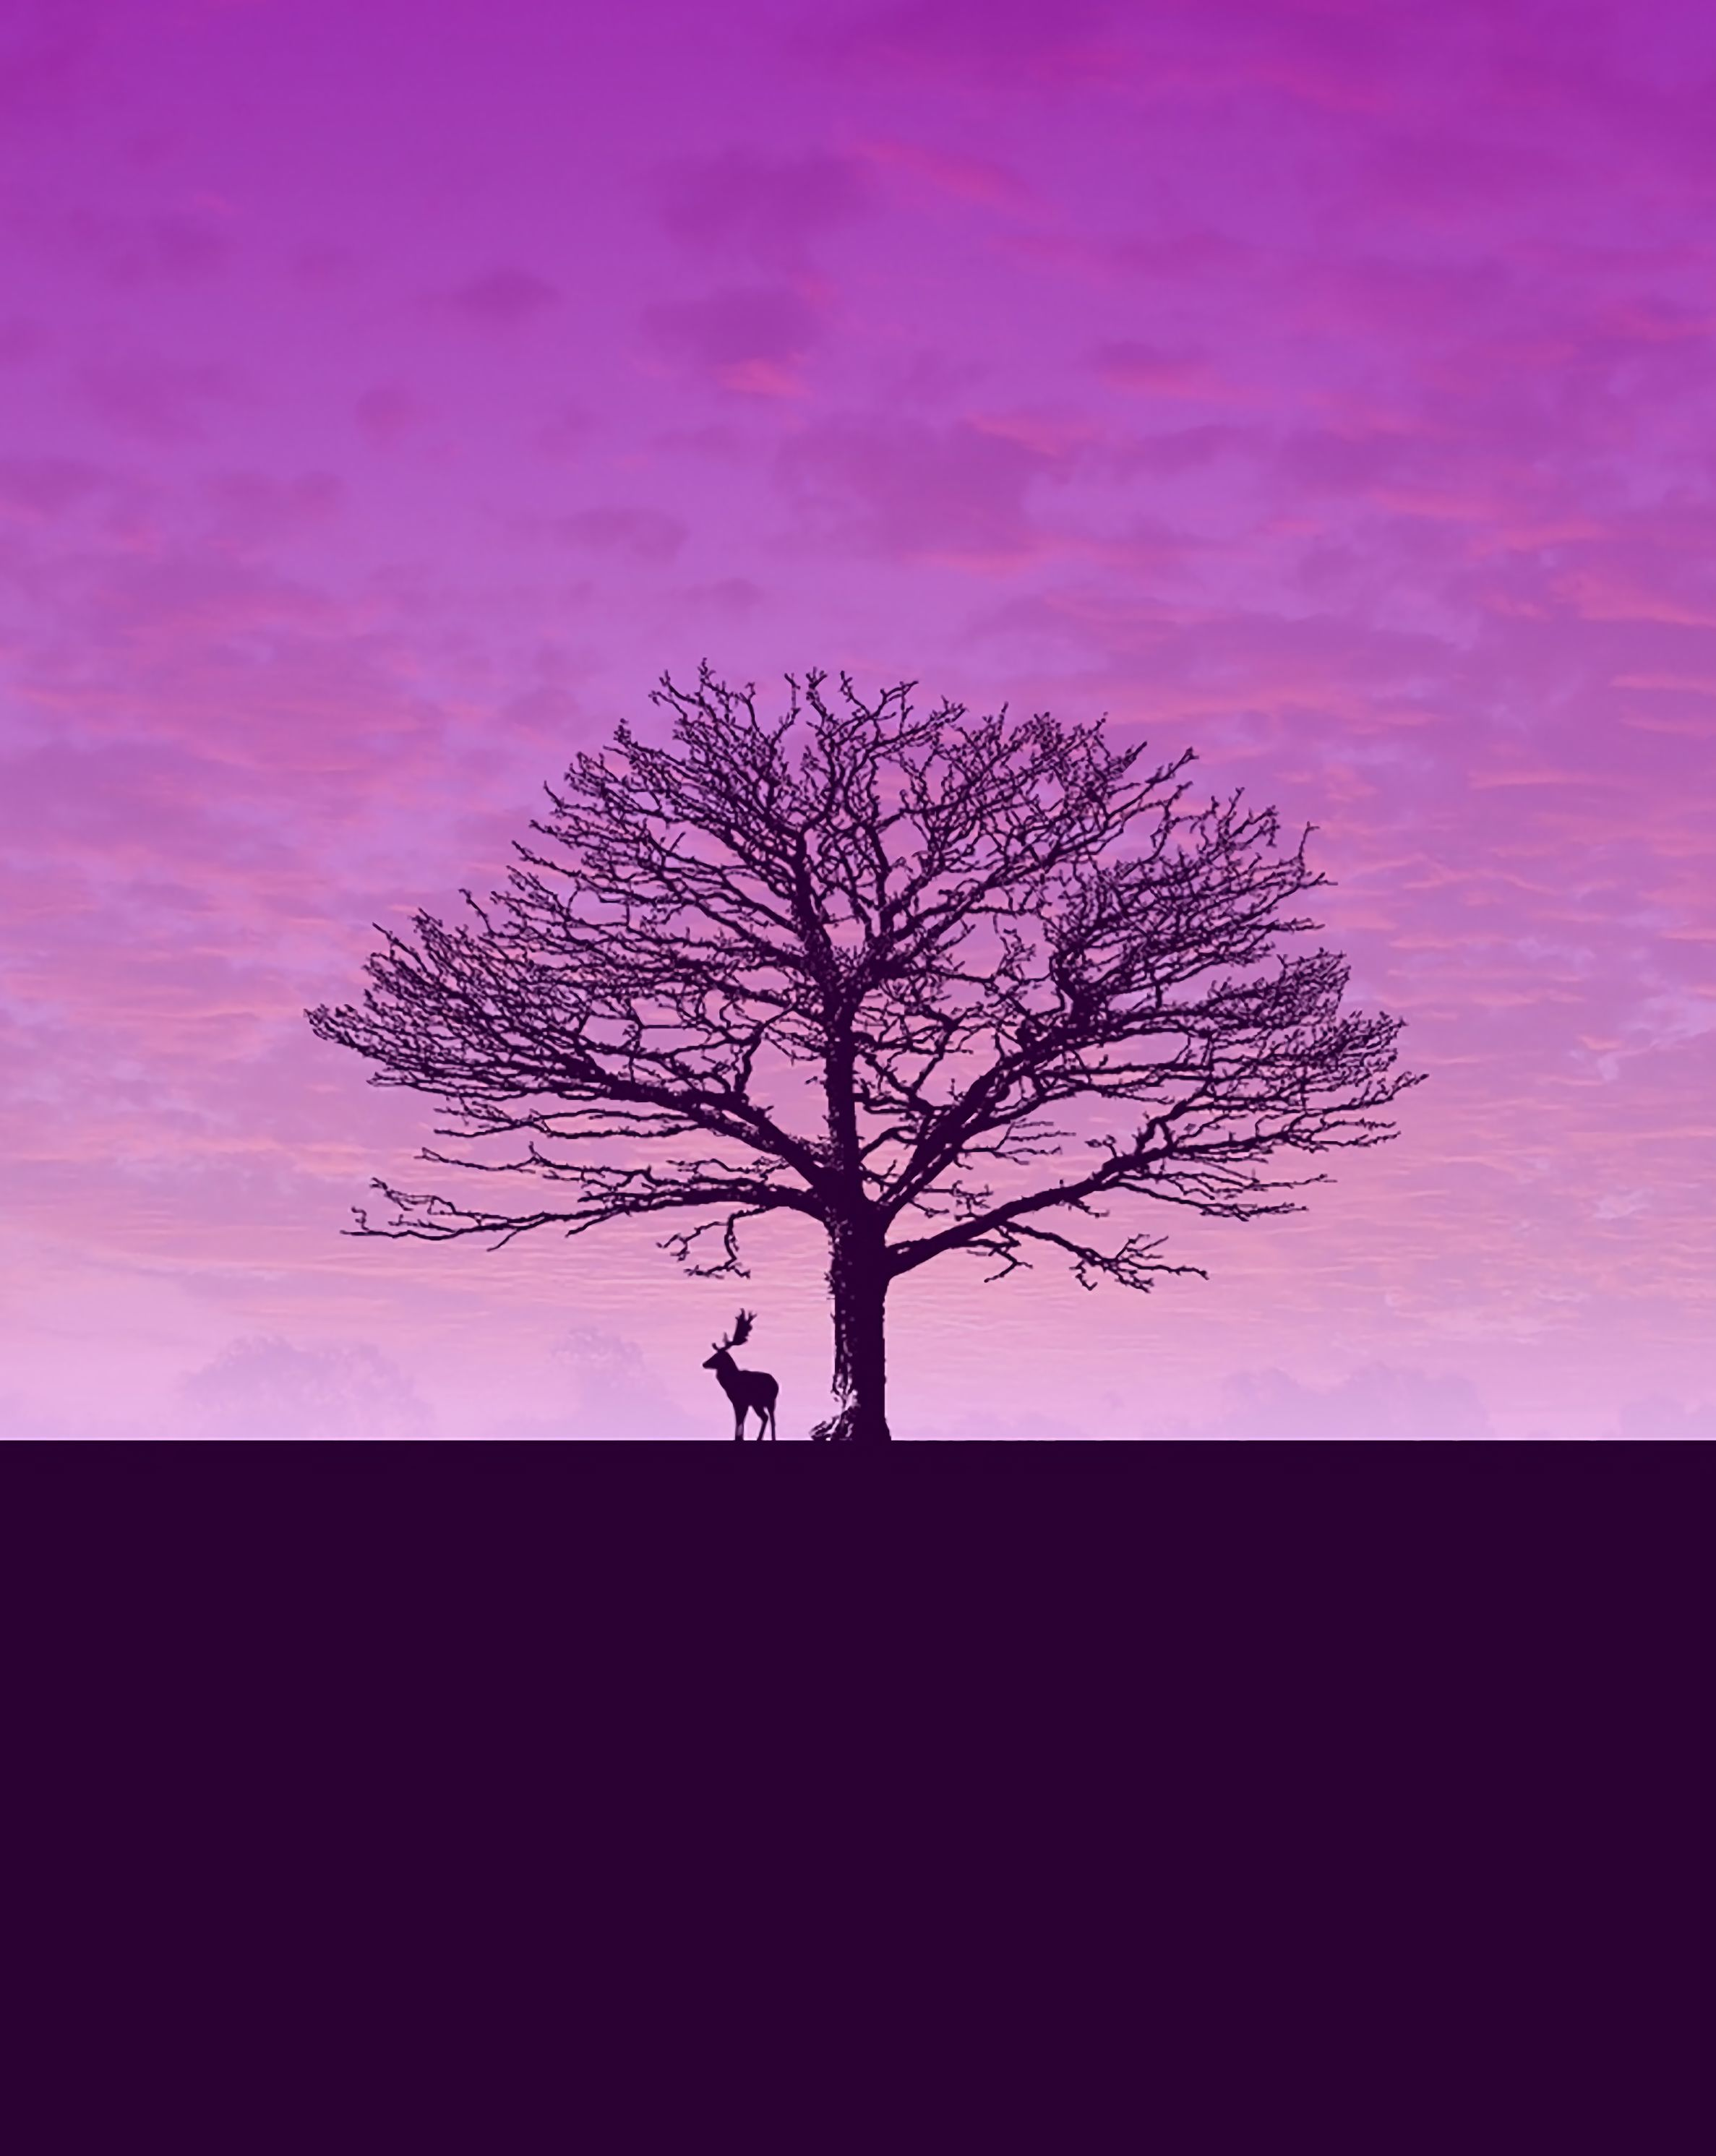 58009 download wallpaper Minimalism, Deer, Wood, Tree, Clouds, Sky screensavers and pictures for free